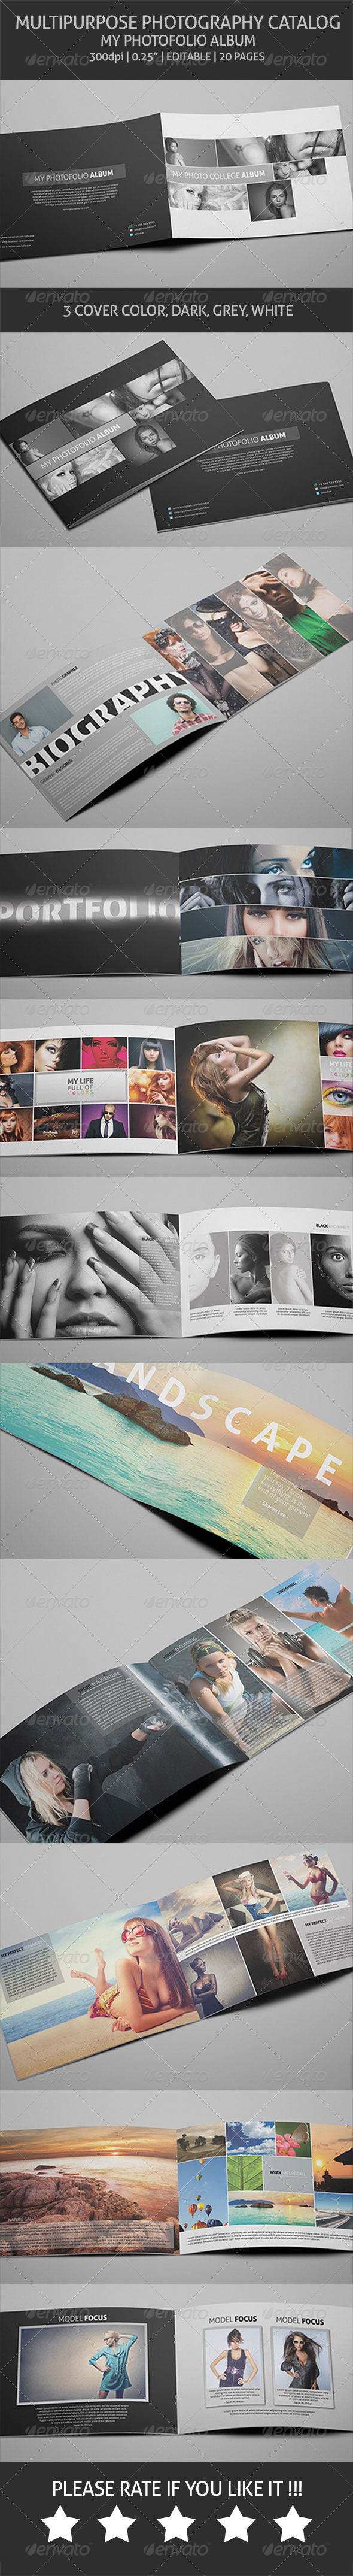 Photography Album - Multipurpose Catalog - Photo Albums Print Templates